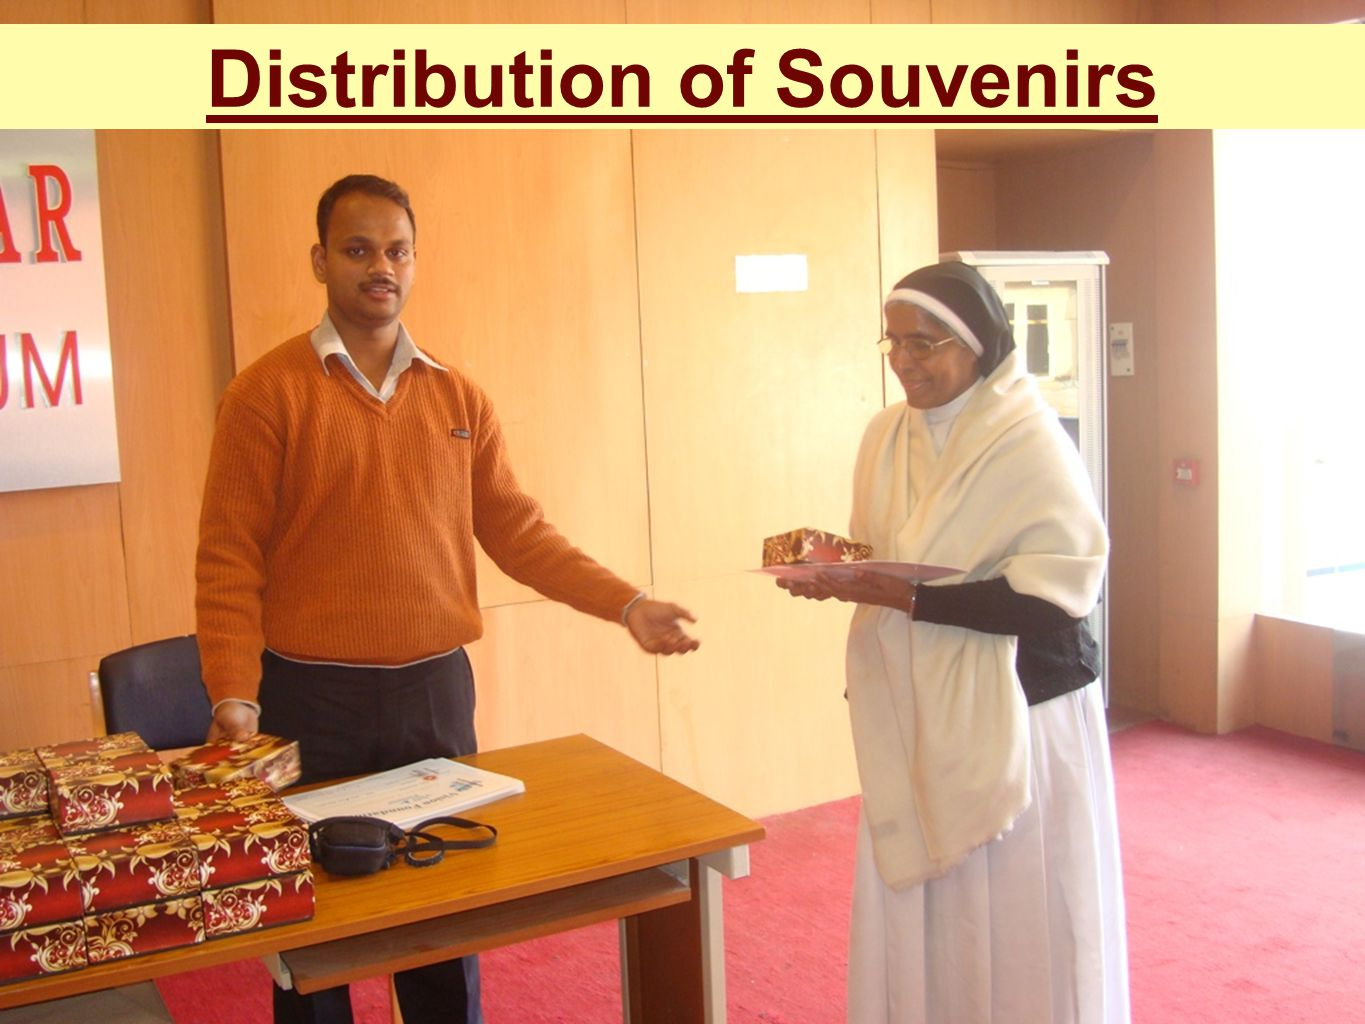 Distribution of Souvenirs